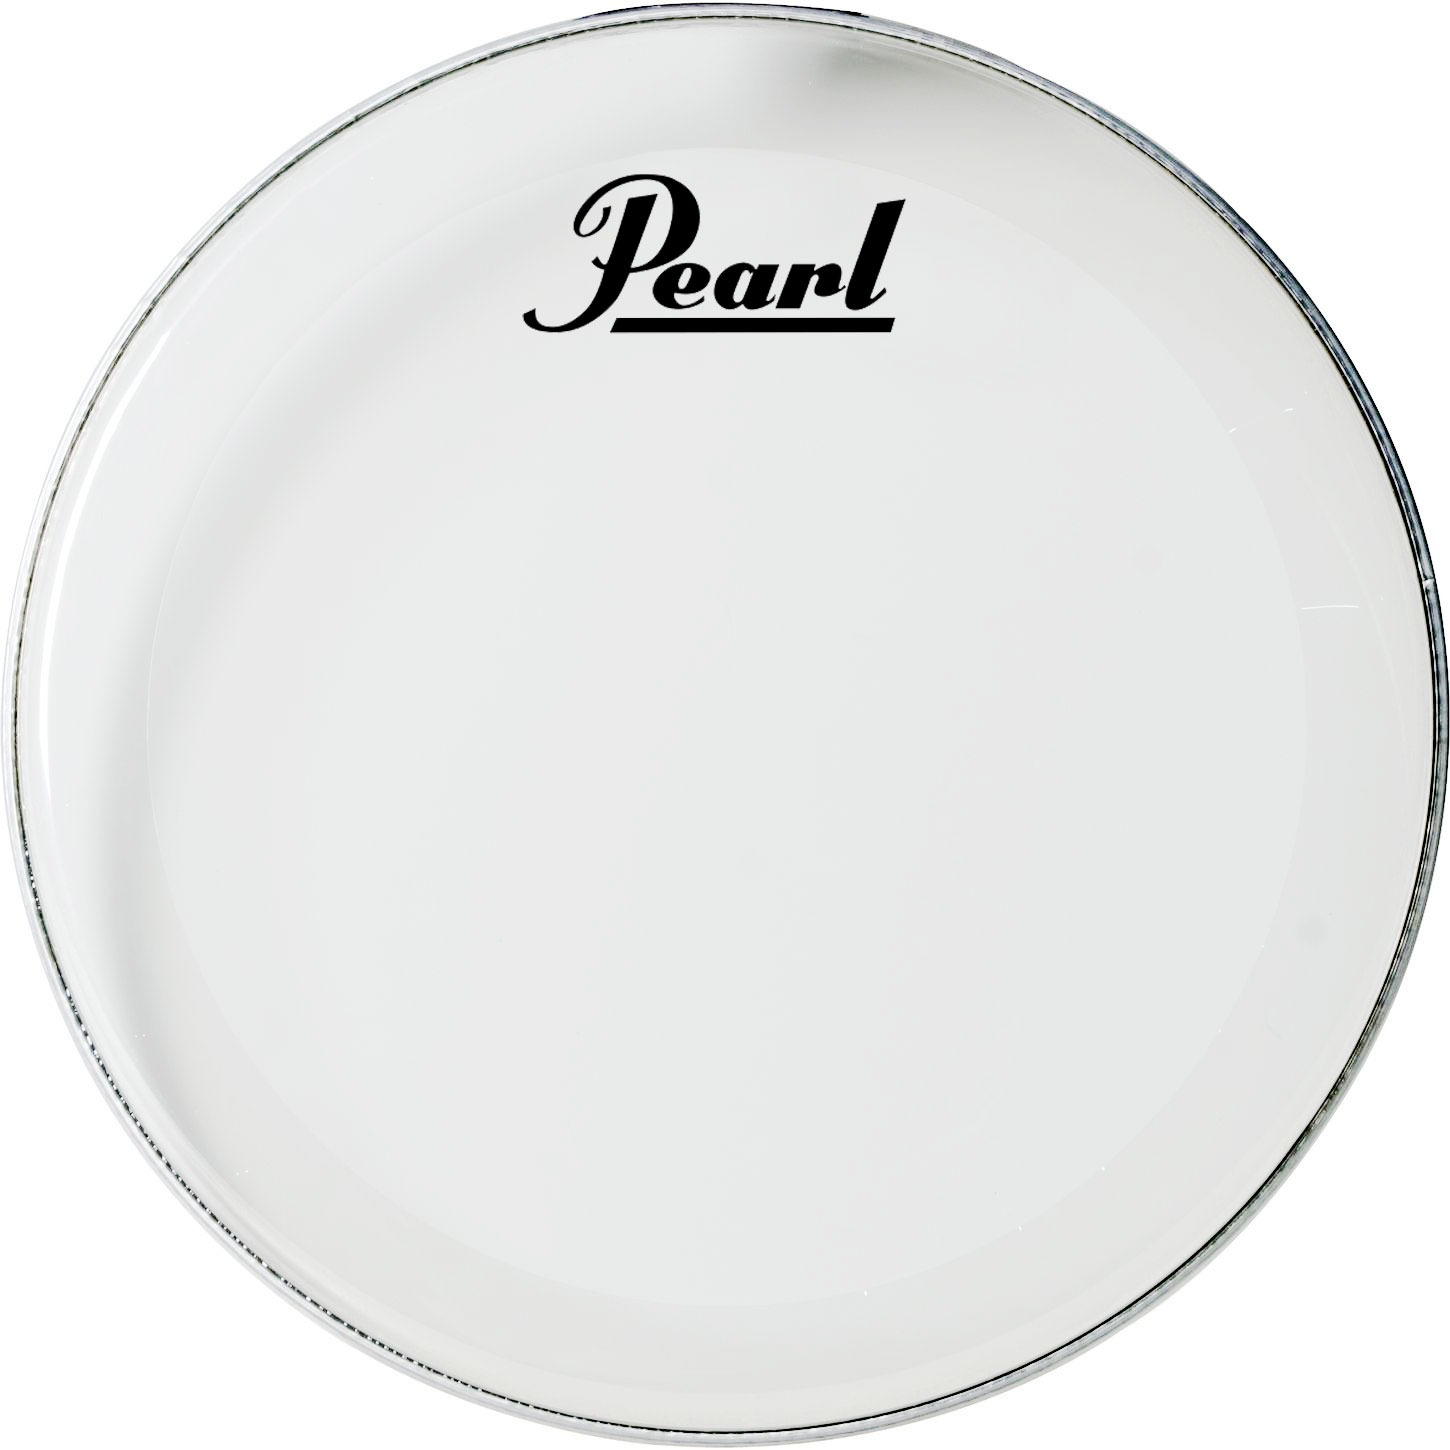 "Pearl 15"" Super Clear Tom Head"